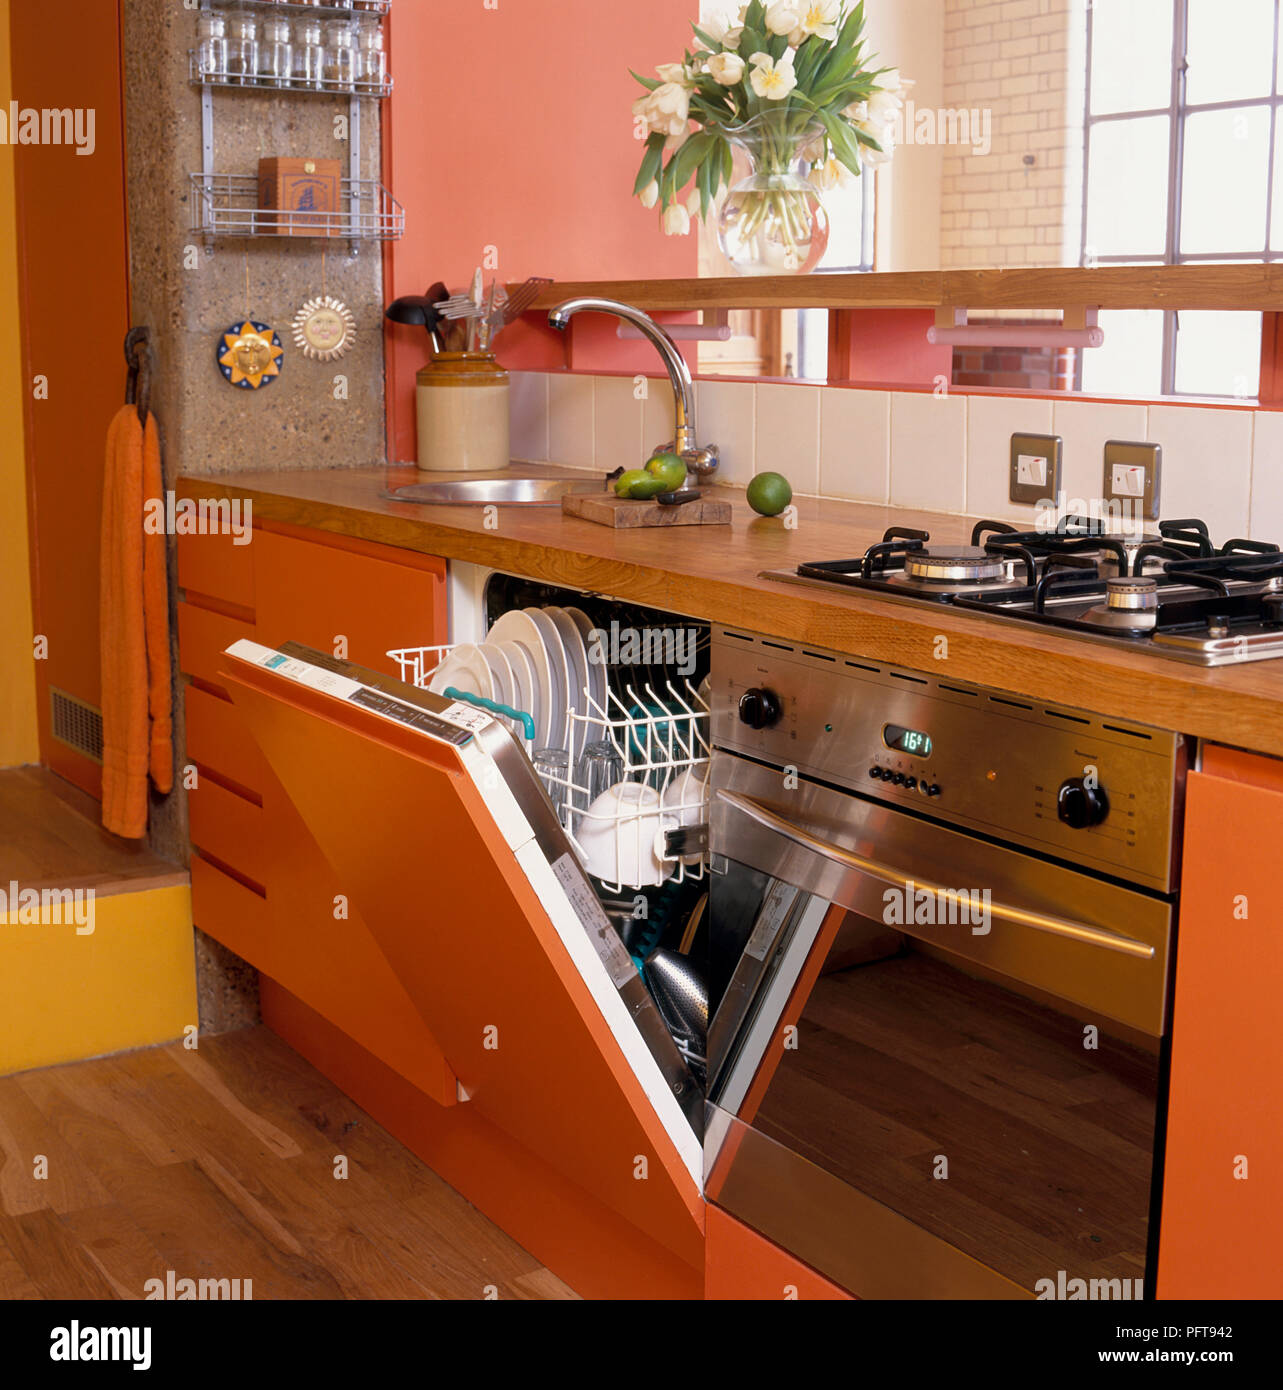 https www alamy com dishwasher in fitted kitchen unit with sink oven and drawers image216278274 html